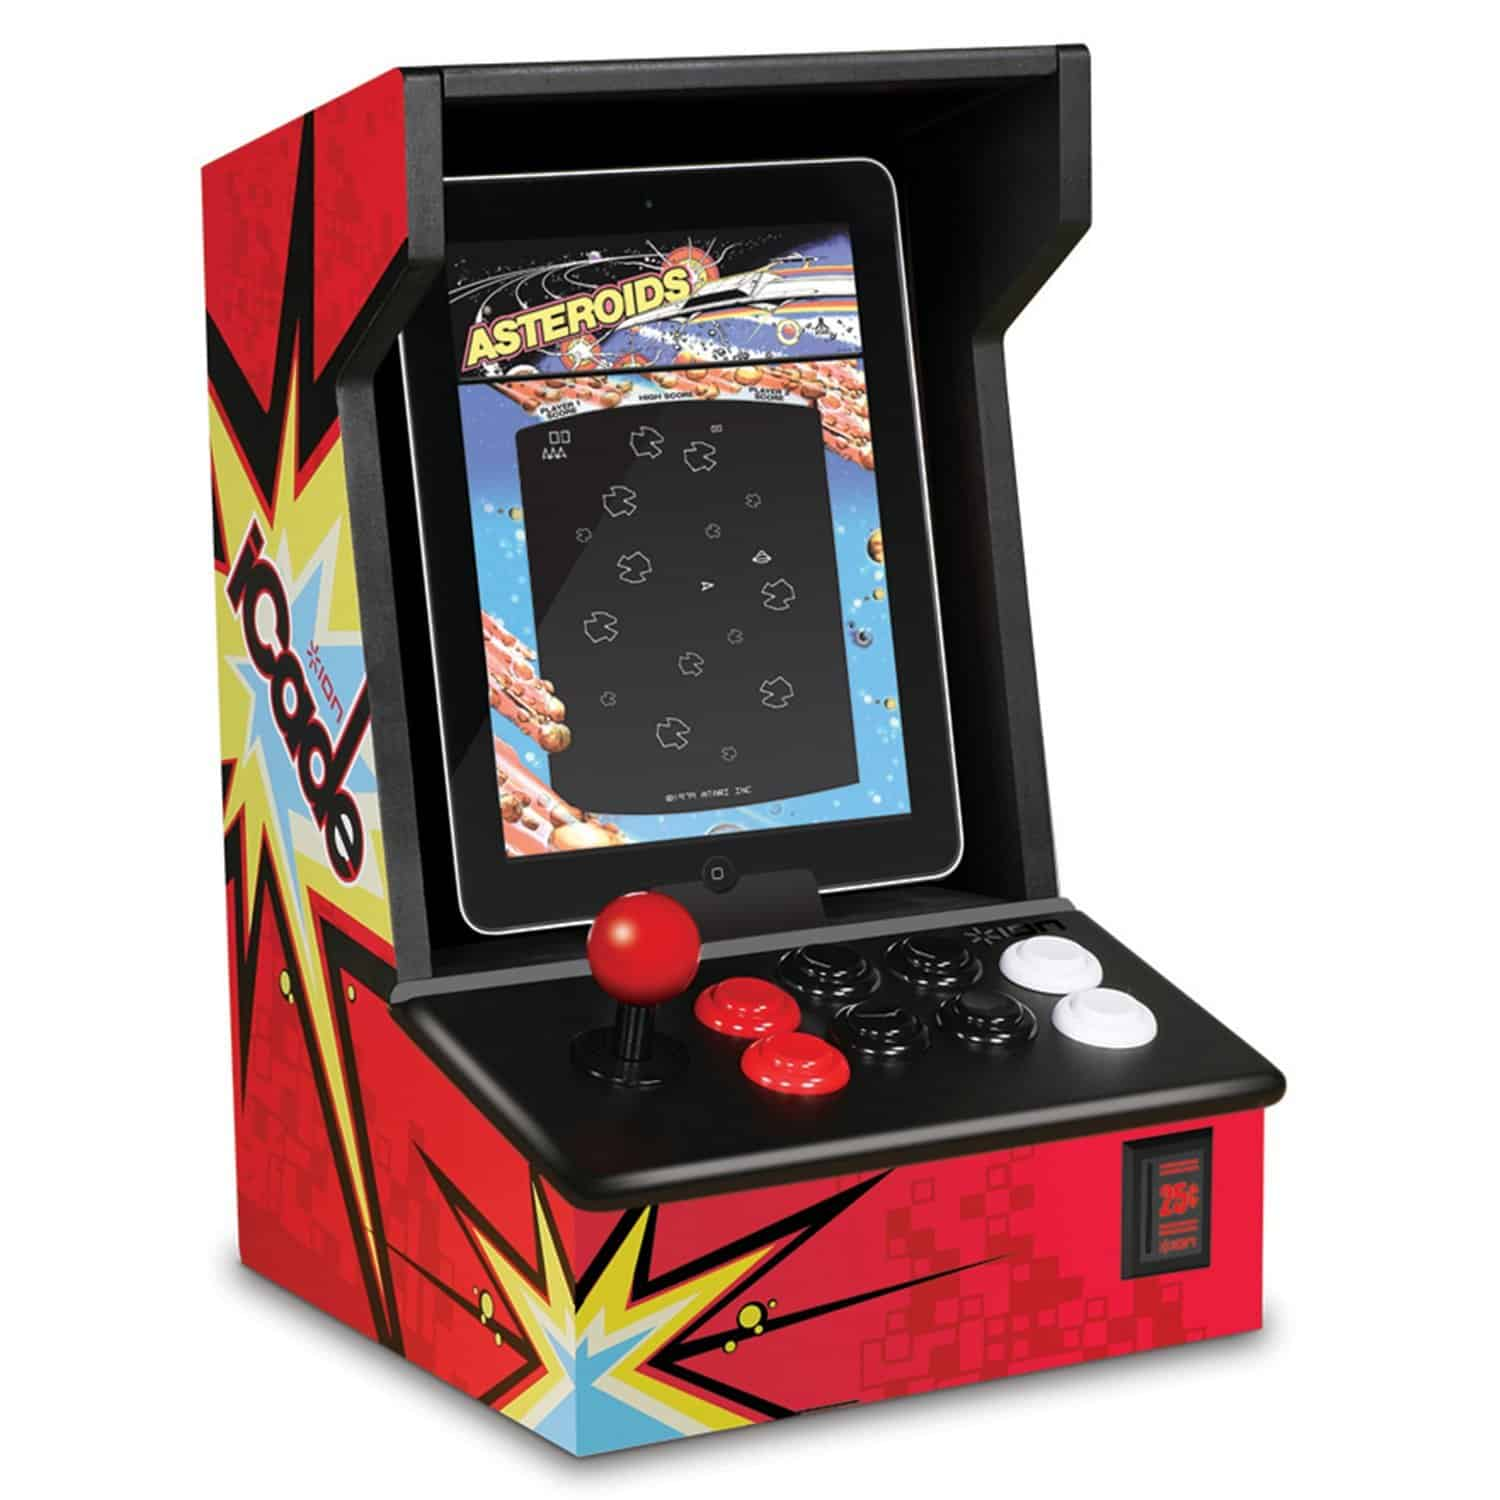 ION iCade Arcade Cabinet for iPad Play Retro Games Cool Gift Idea